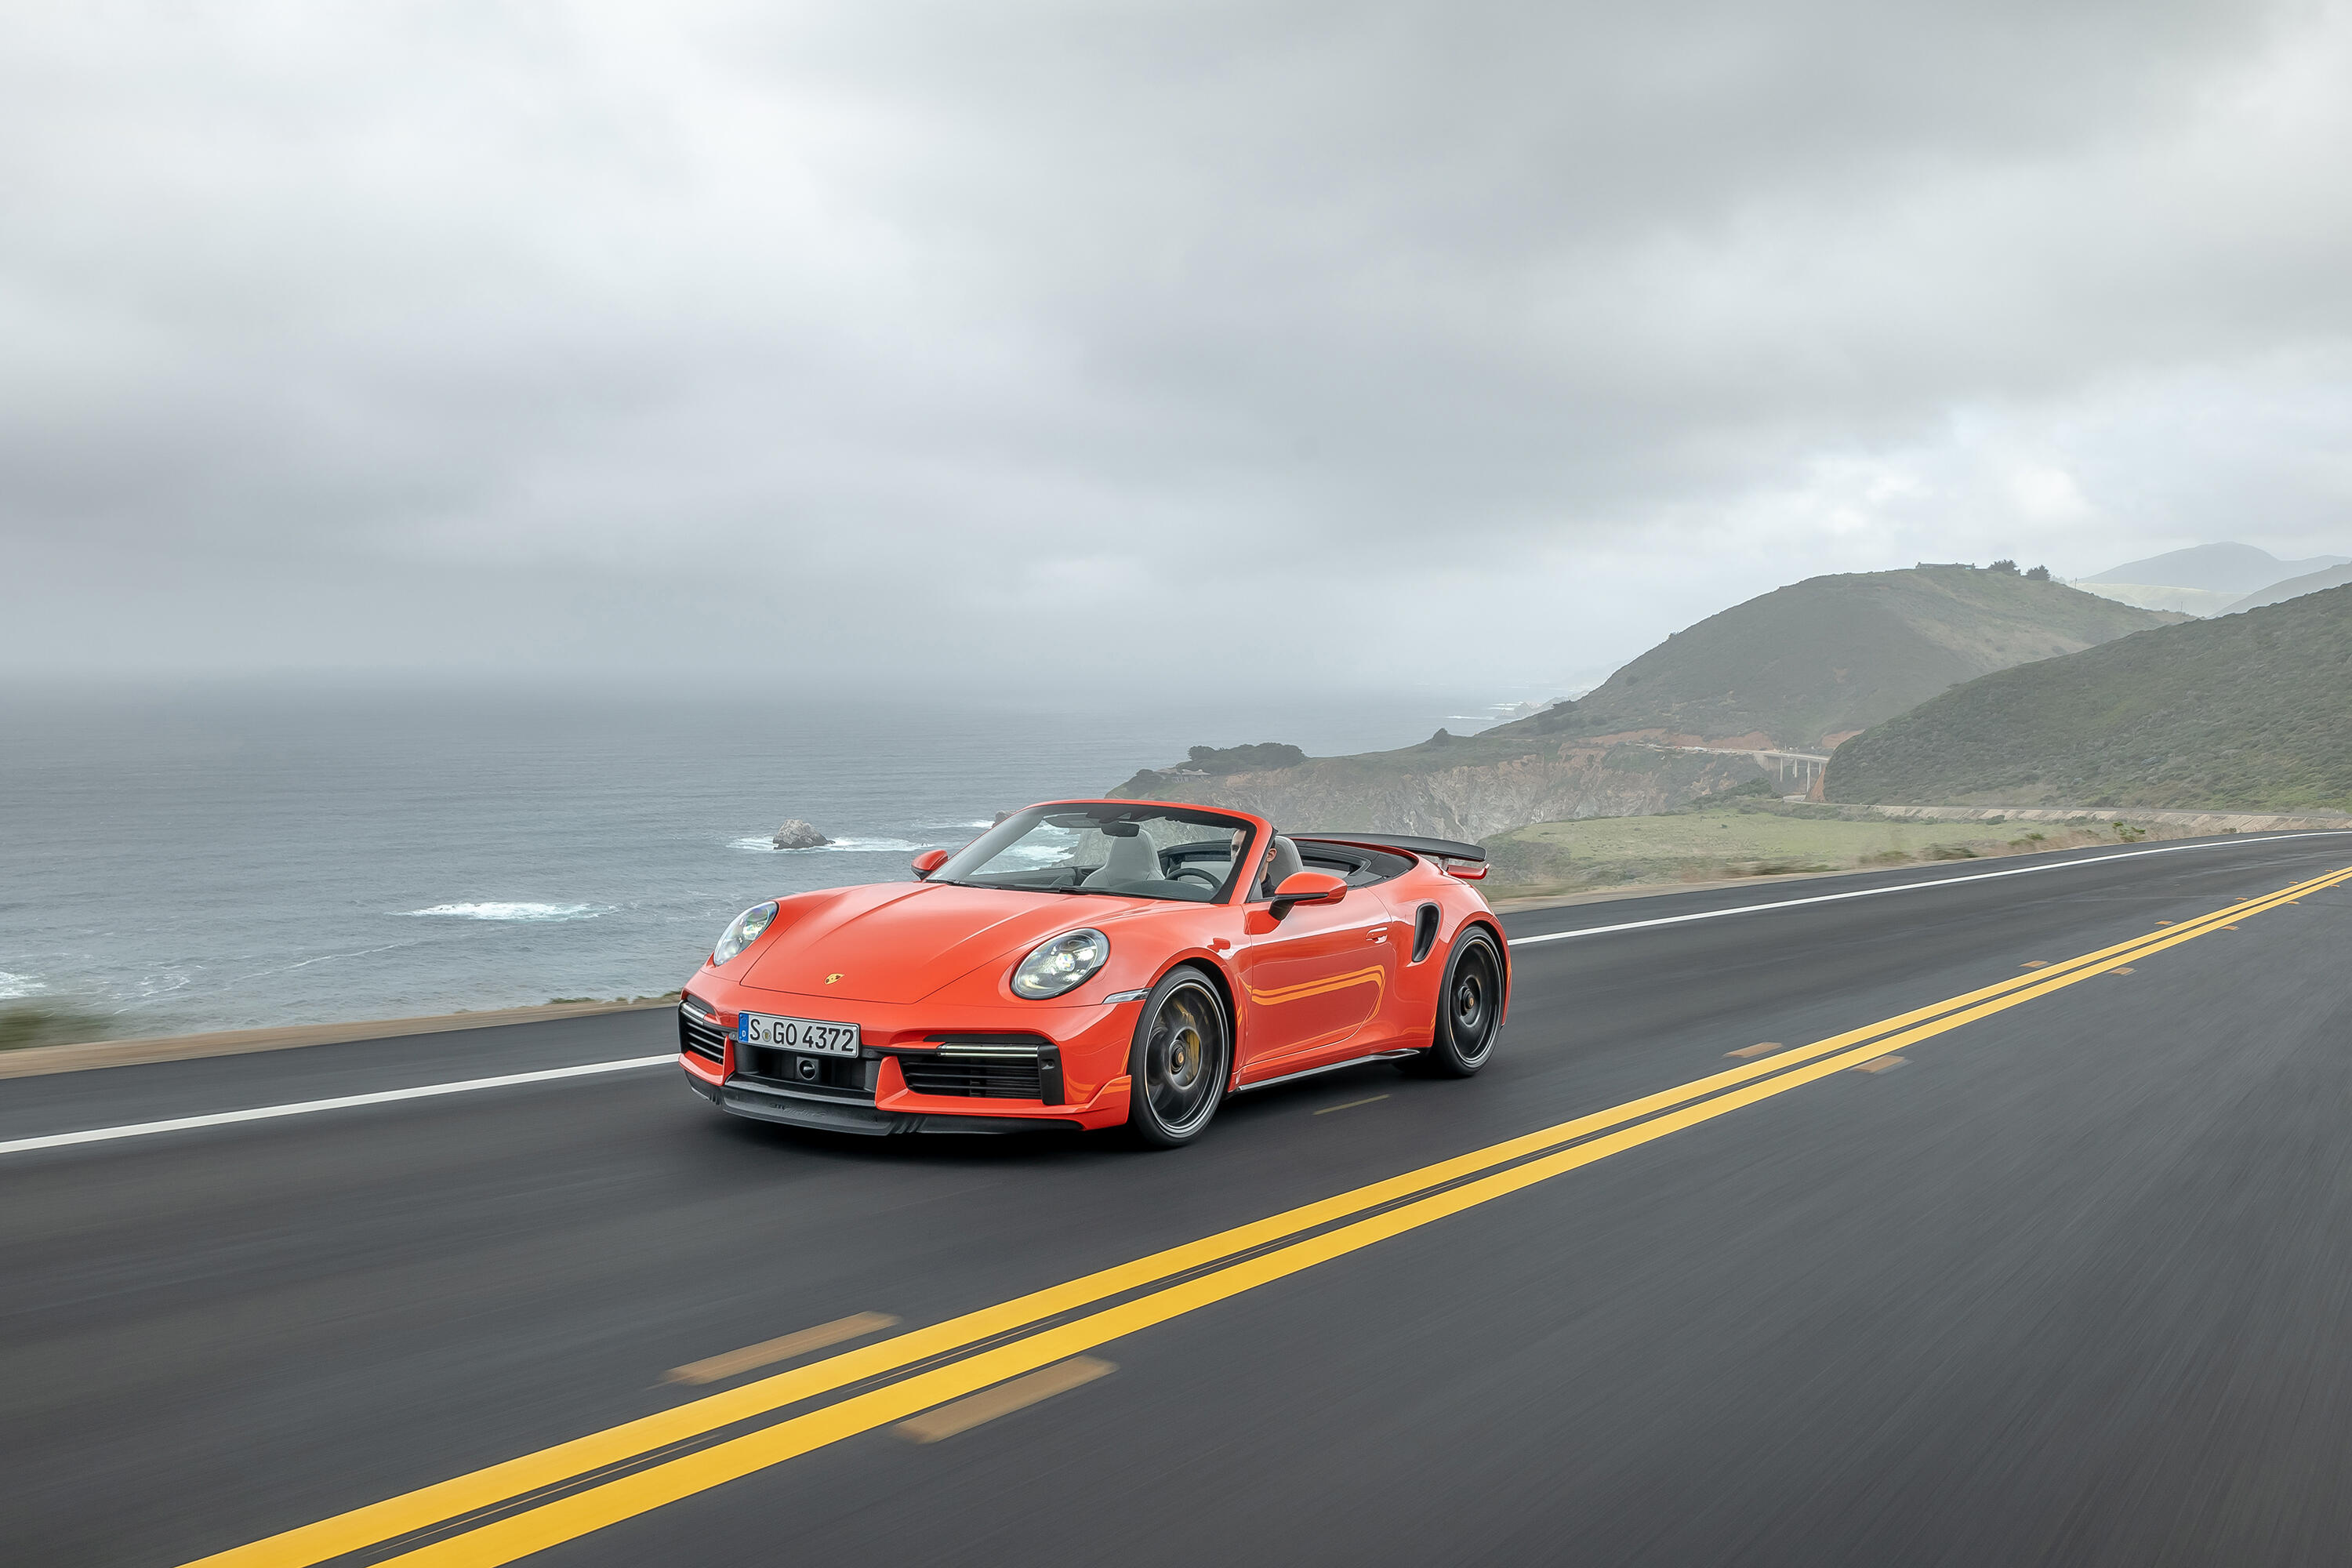 2021 Porsche 911 Turbo S Cabriolet with Sport Design Package